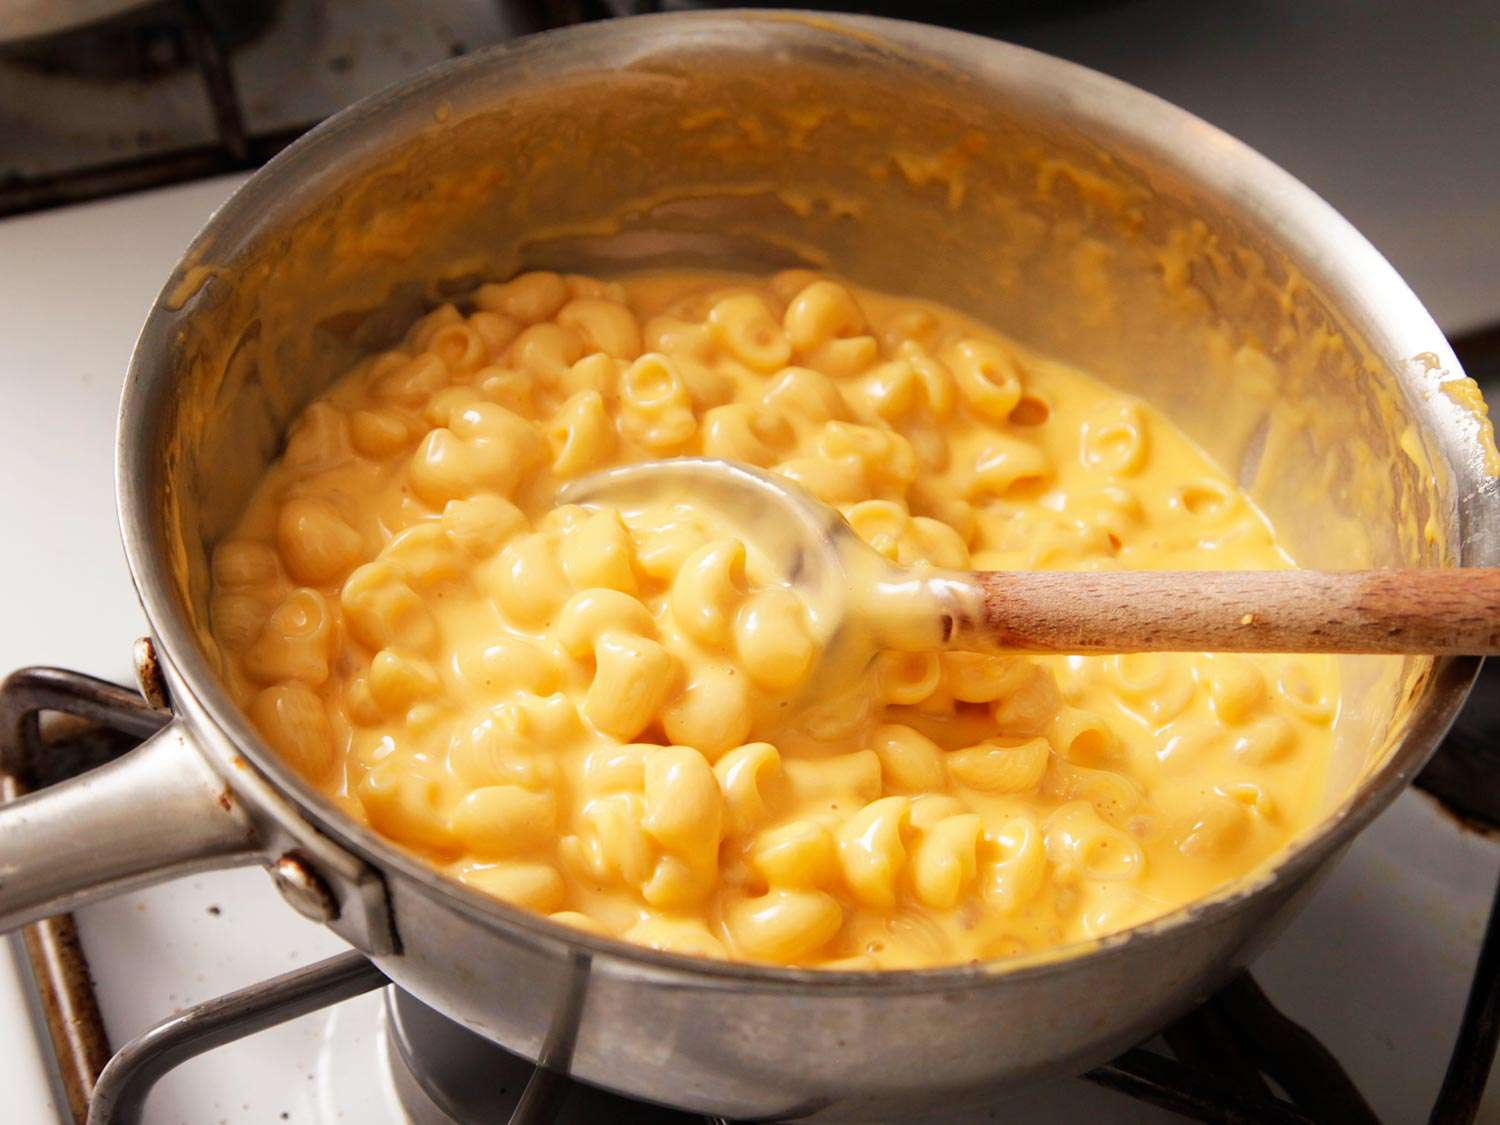 A pot of stovetop macaroni and cheese